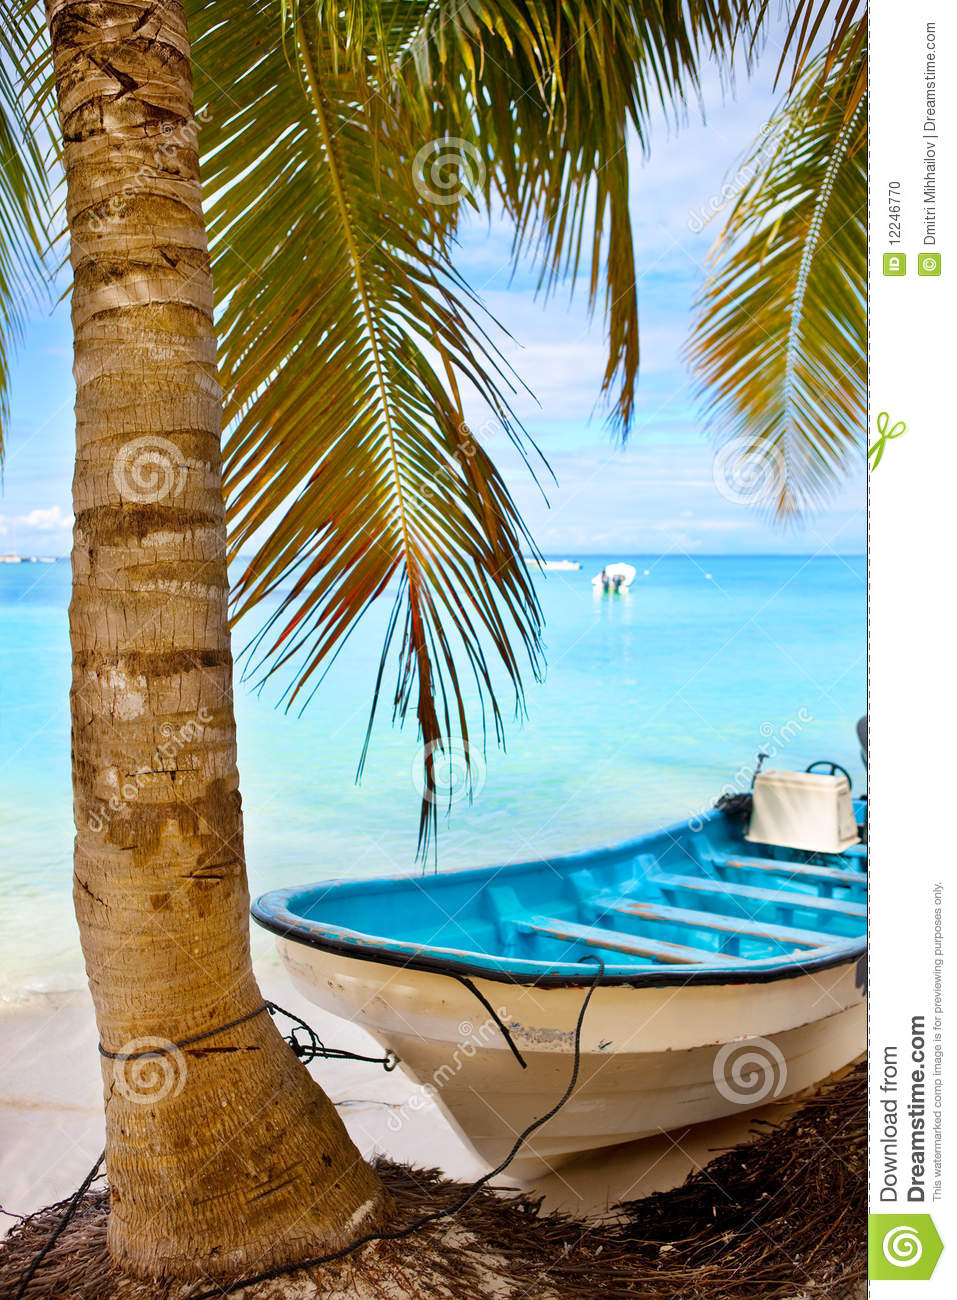 Coconut Palm Tree And A Boat Stock Photo - Image: 12246770